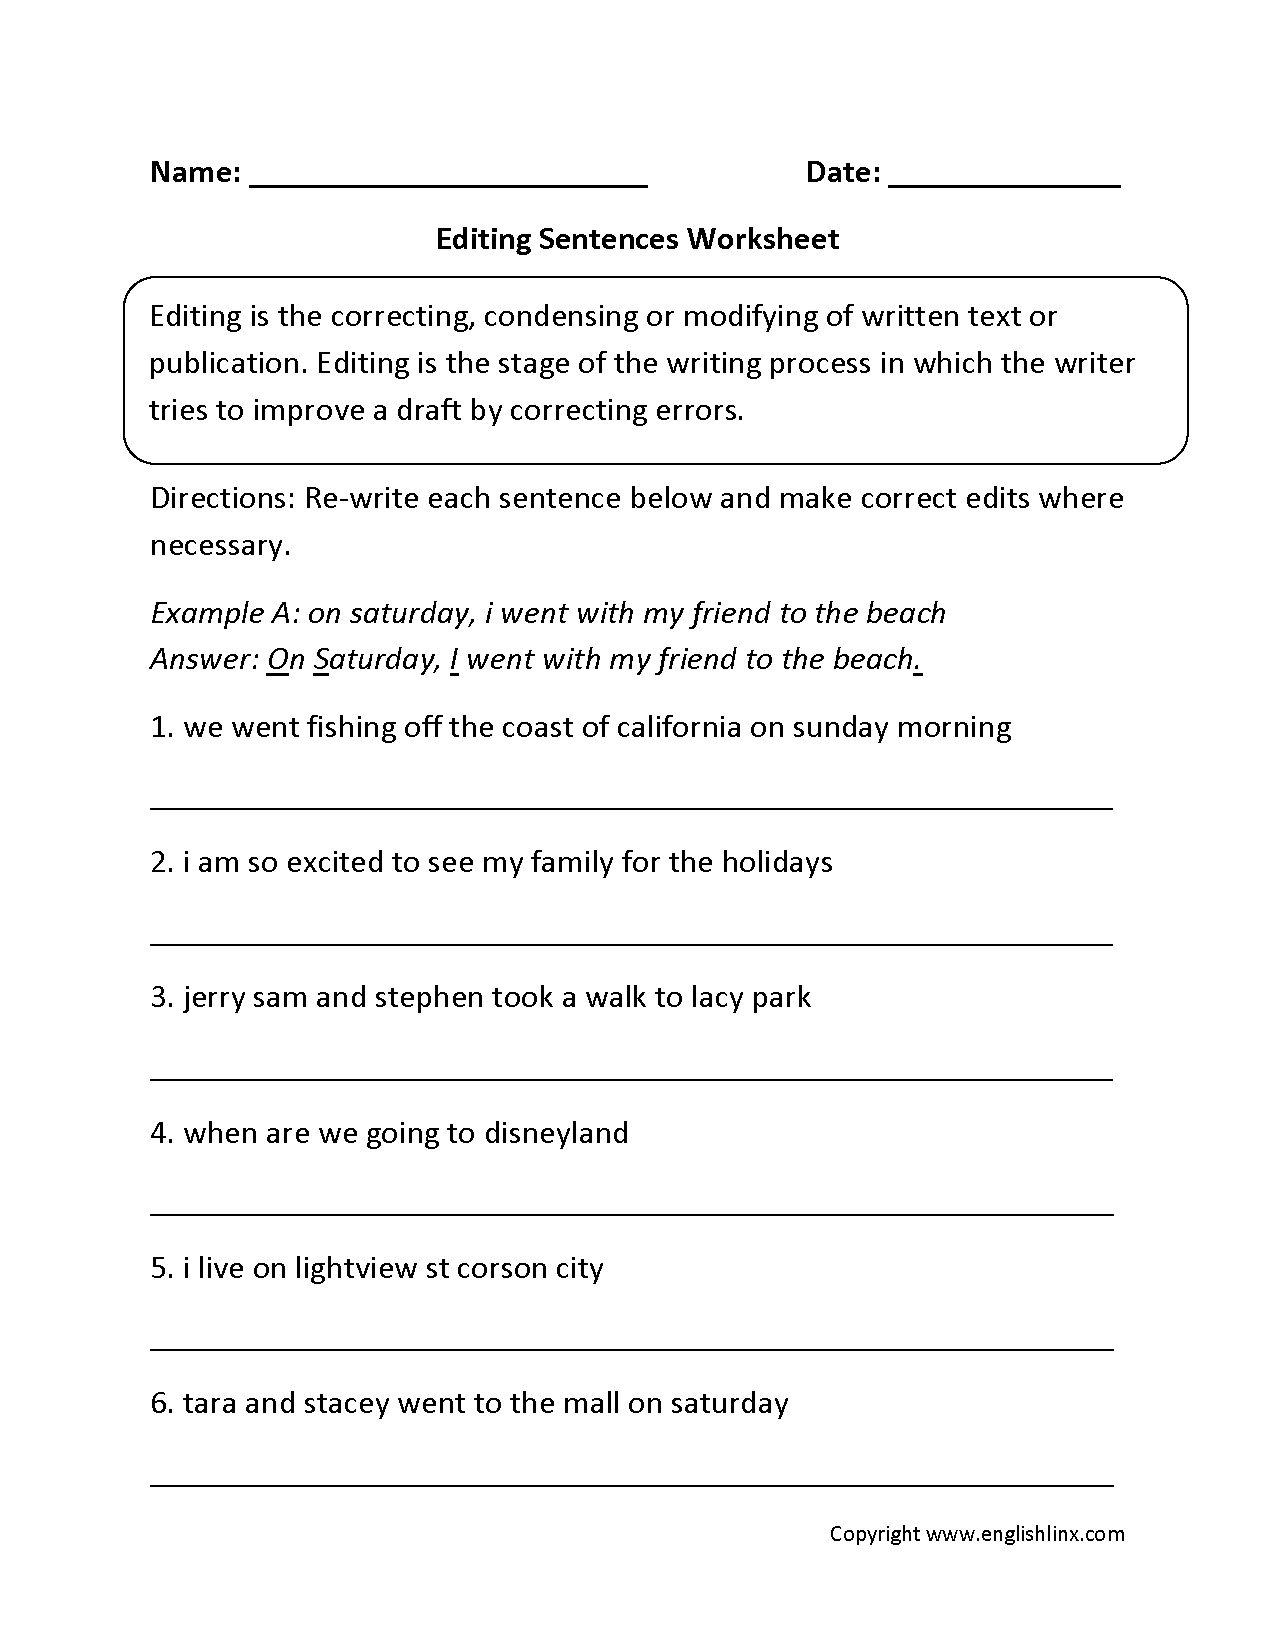 Writing Worksheets | Editing Worksheets - Free Printable Sentence Correction Worksheets